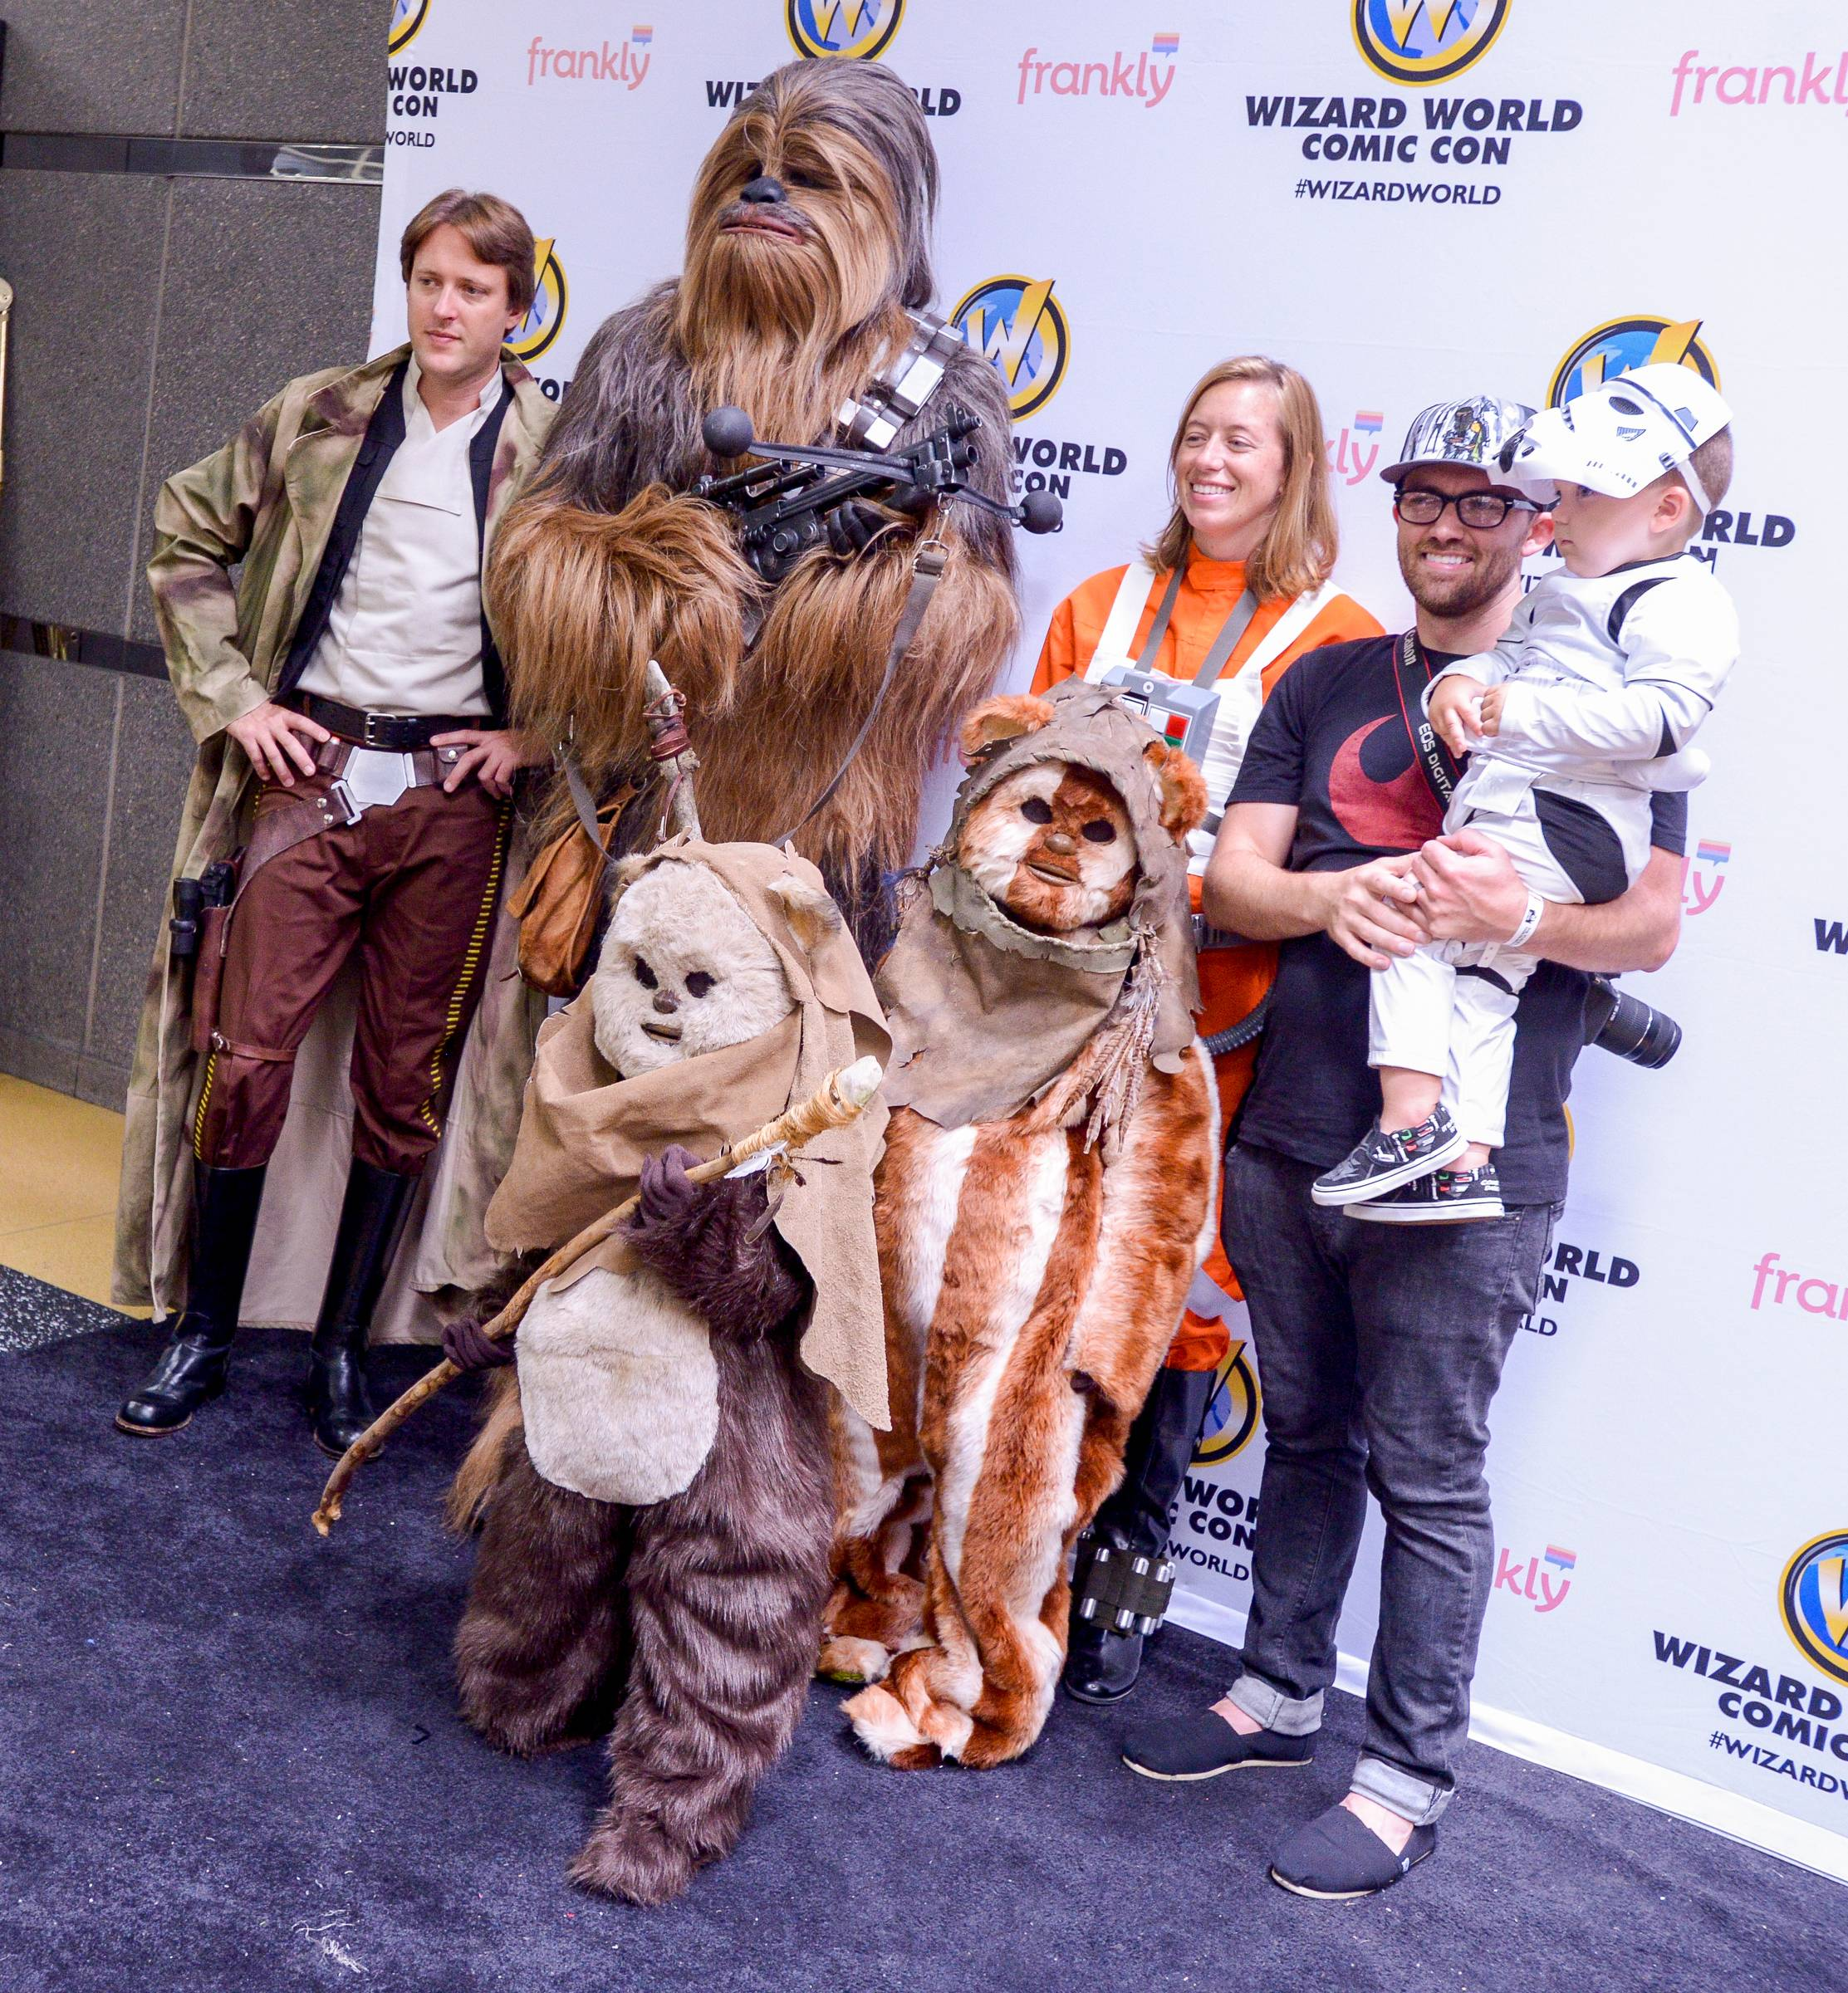 Chip Webb and his some Knox, 2 dressed as a mini Stormtrooper from Star War pose with for a photo with other Star Wars characters during the Comic Con convention at the Donald E. Stephens Convention Center in Rosemont.